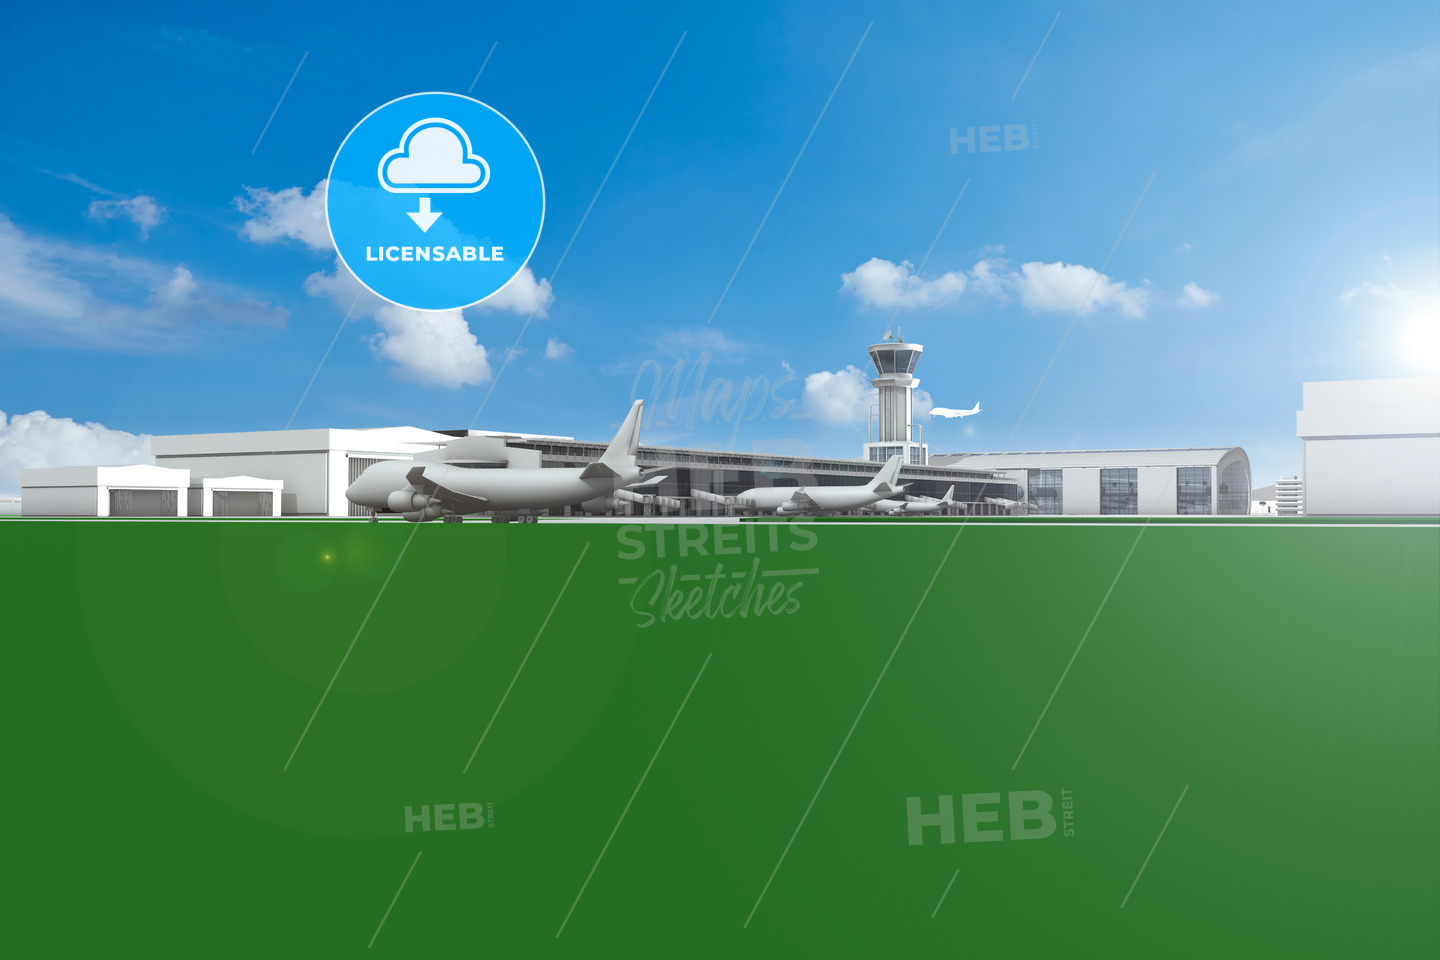 Airfield with planes and blue sky - Hebstreits